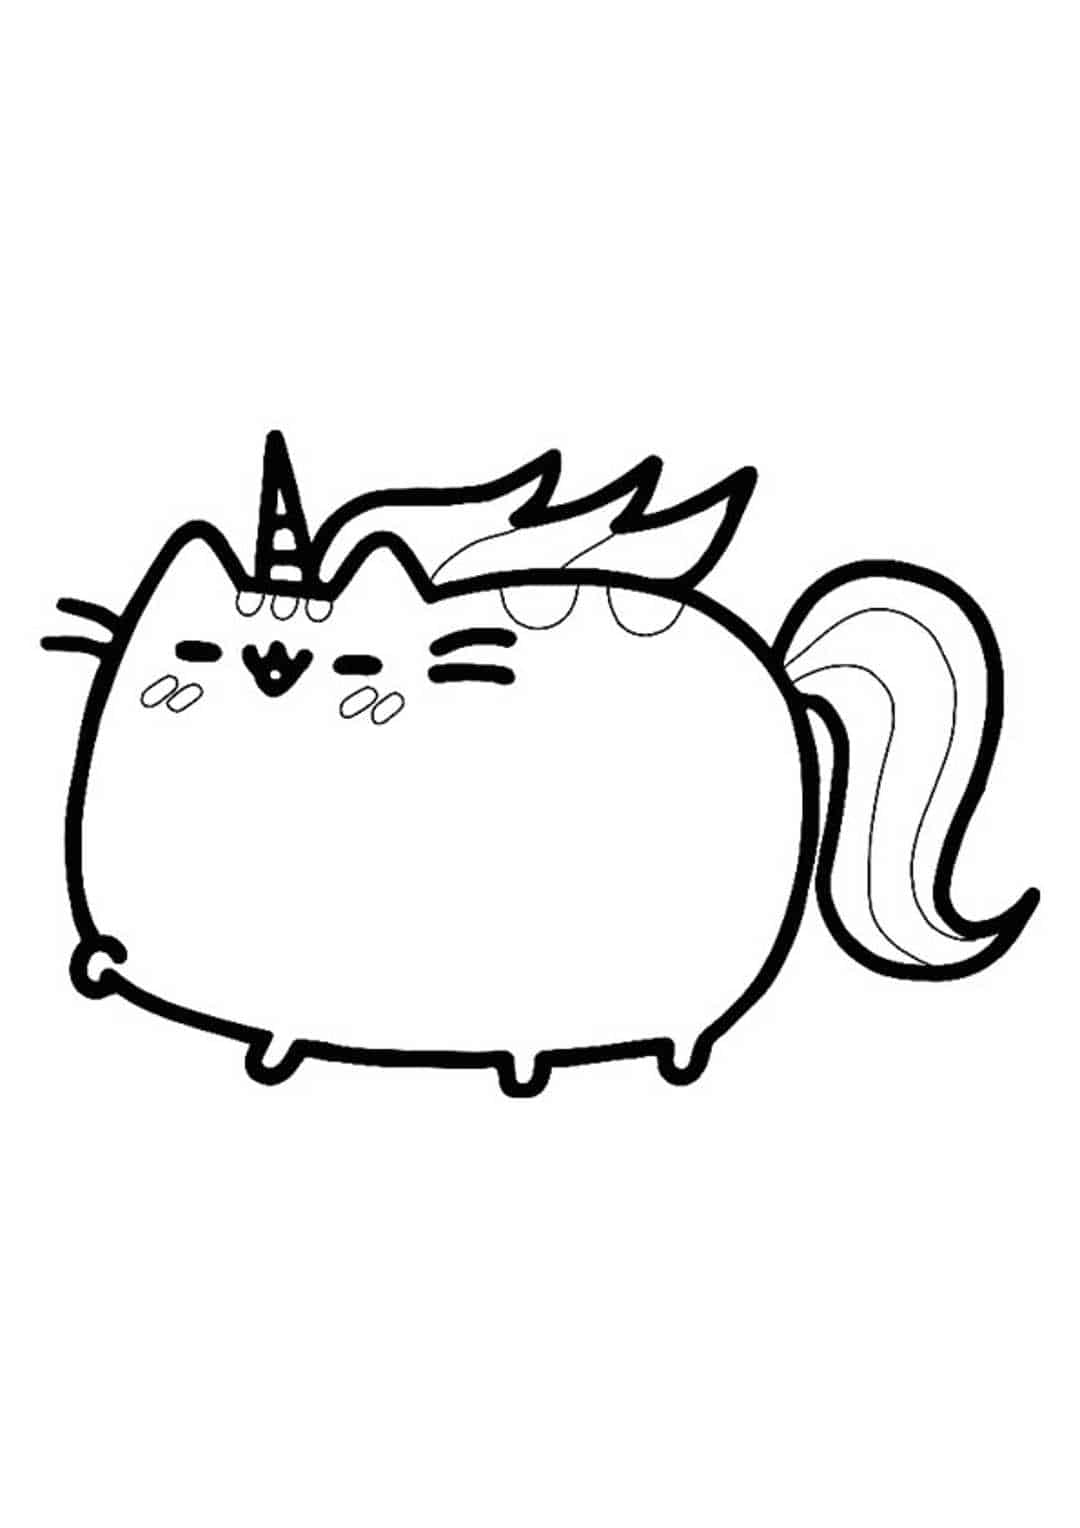 Pusheen Unicorn Coloring Page